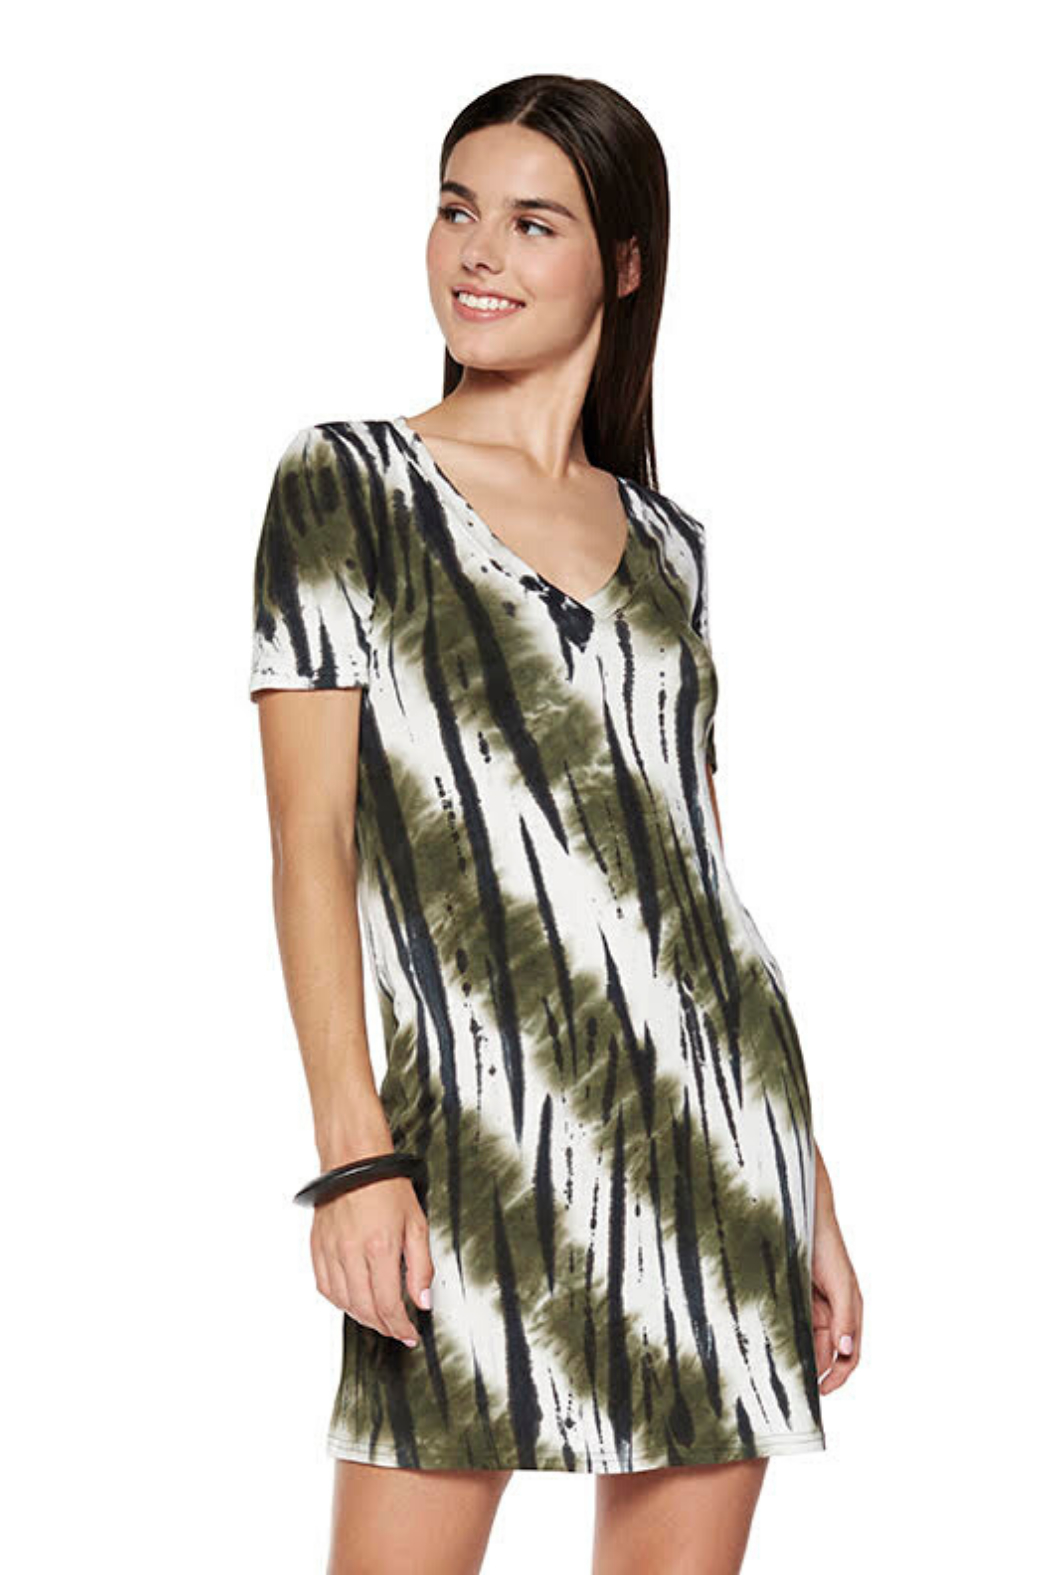 Viereck Madison tie dye v-neck s/s dress - Front Cropped Image